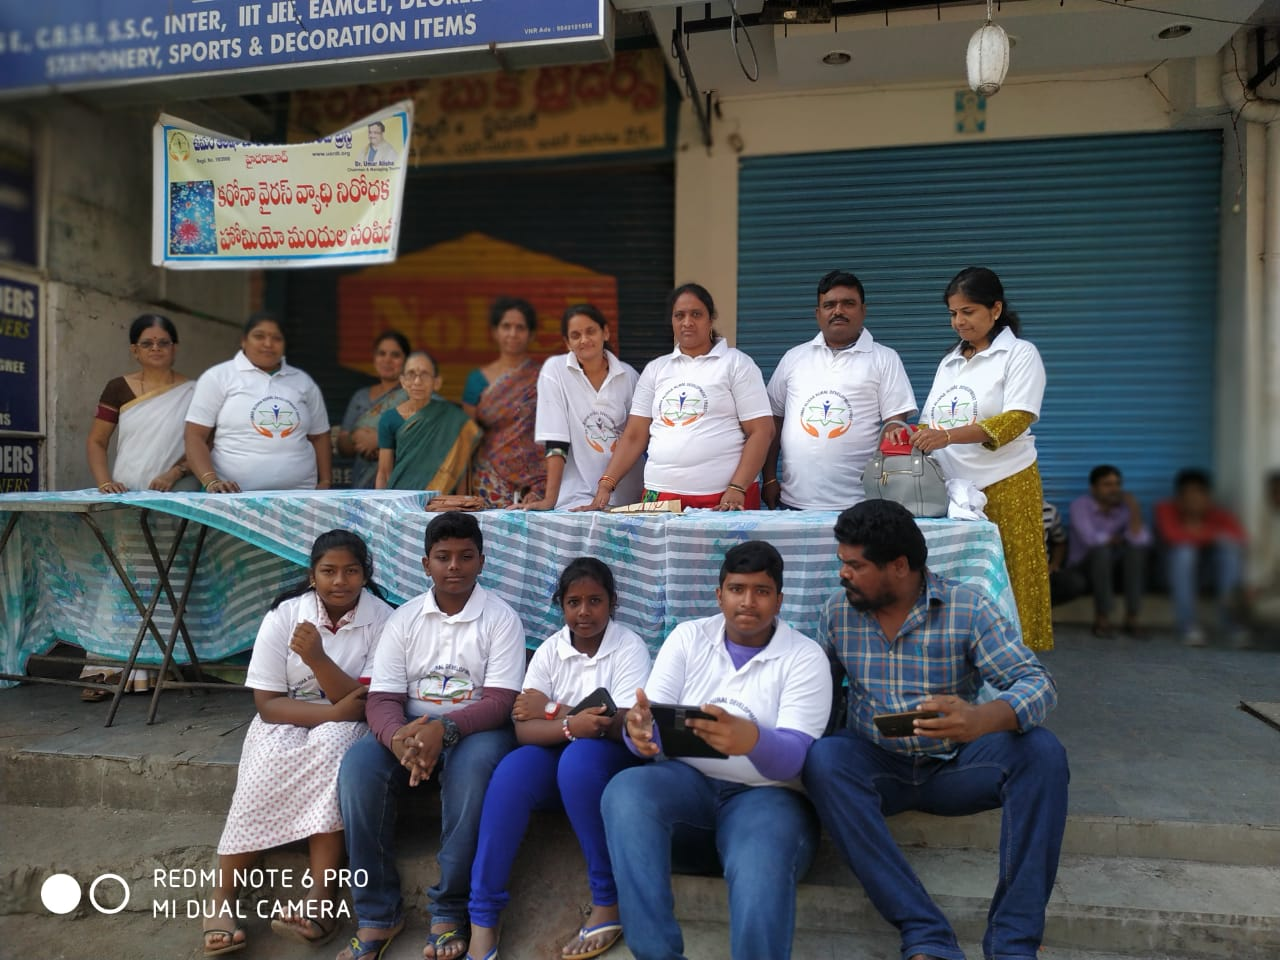 Coronavirus preventive medicine distributed by UARDT at Sri Manga Tiffin Center, Indiranagar, Hyderabad on 15-March-2020